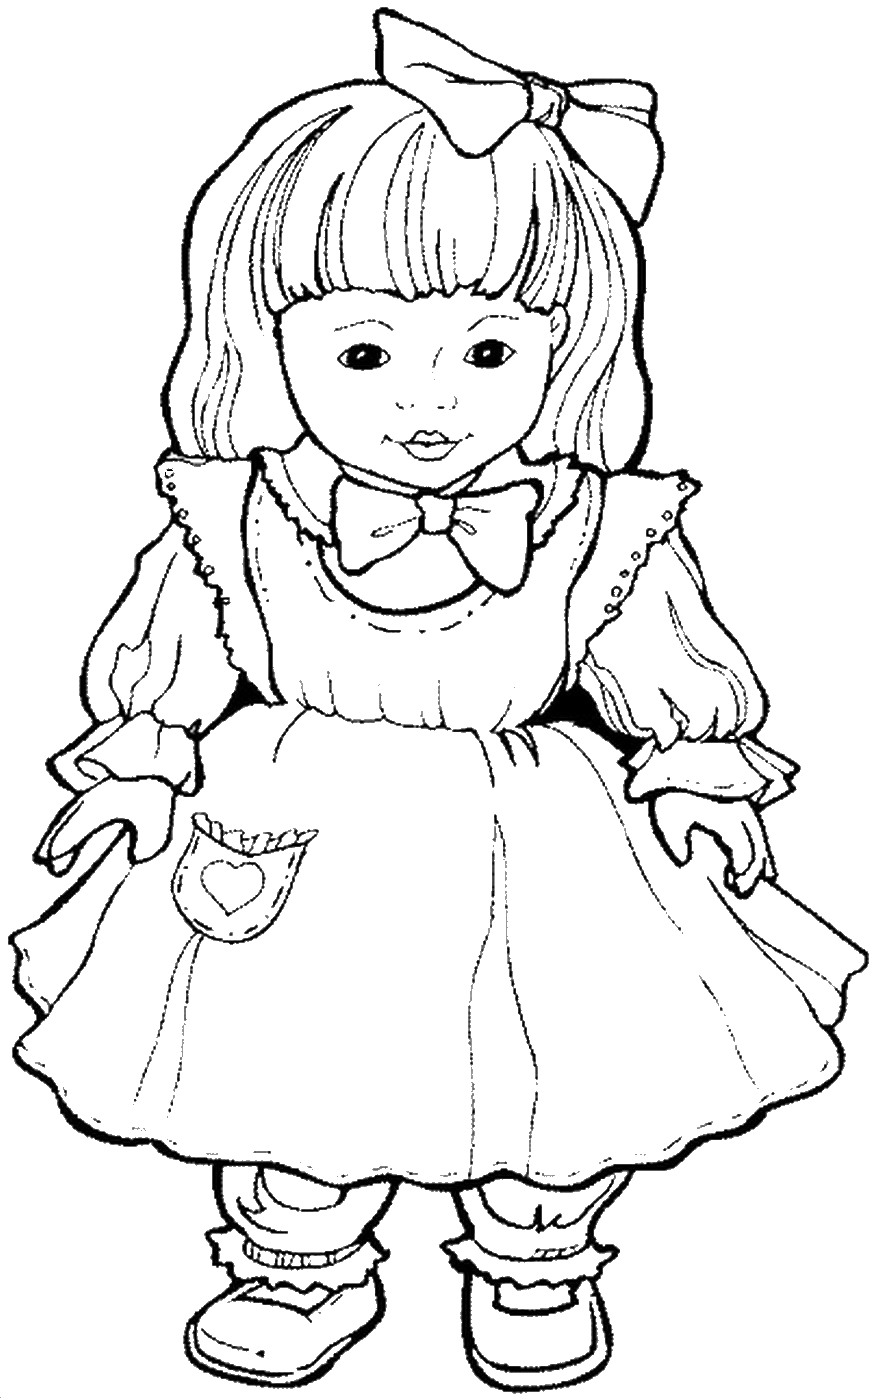 coloring pages dolls doll coloring pages to download and print for free coloring dolls pages